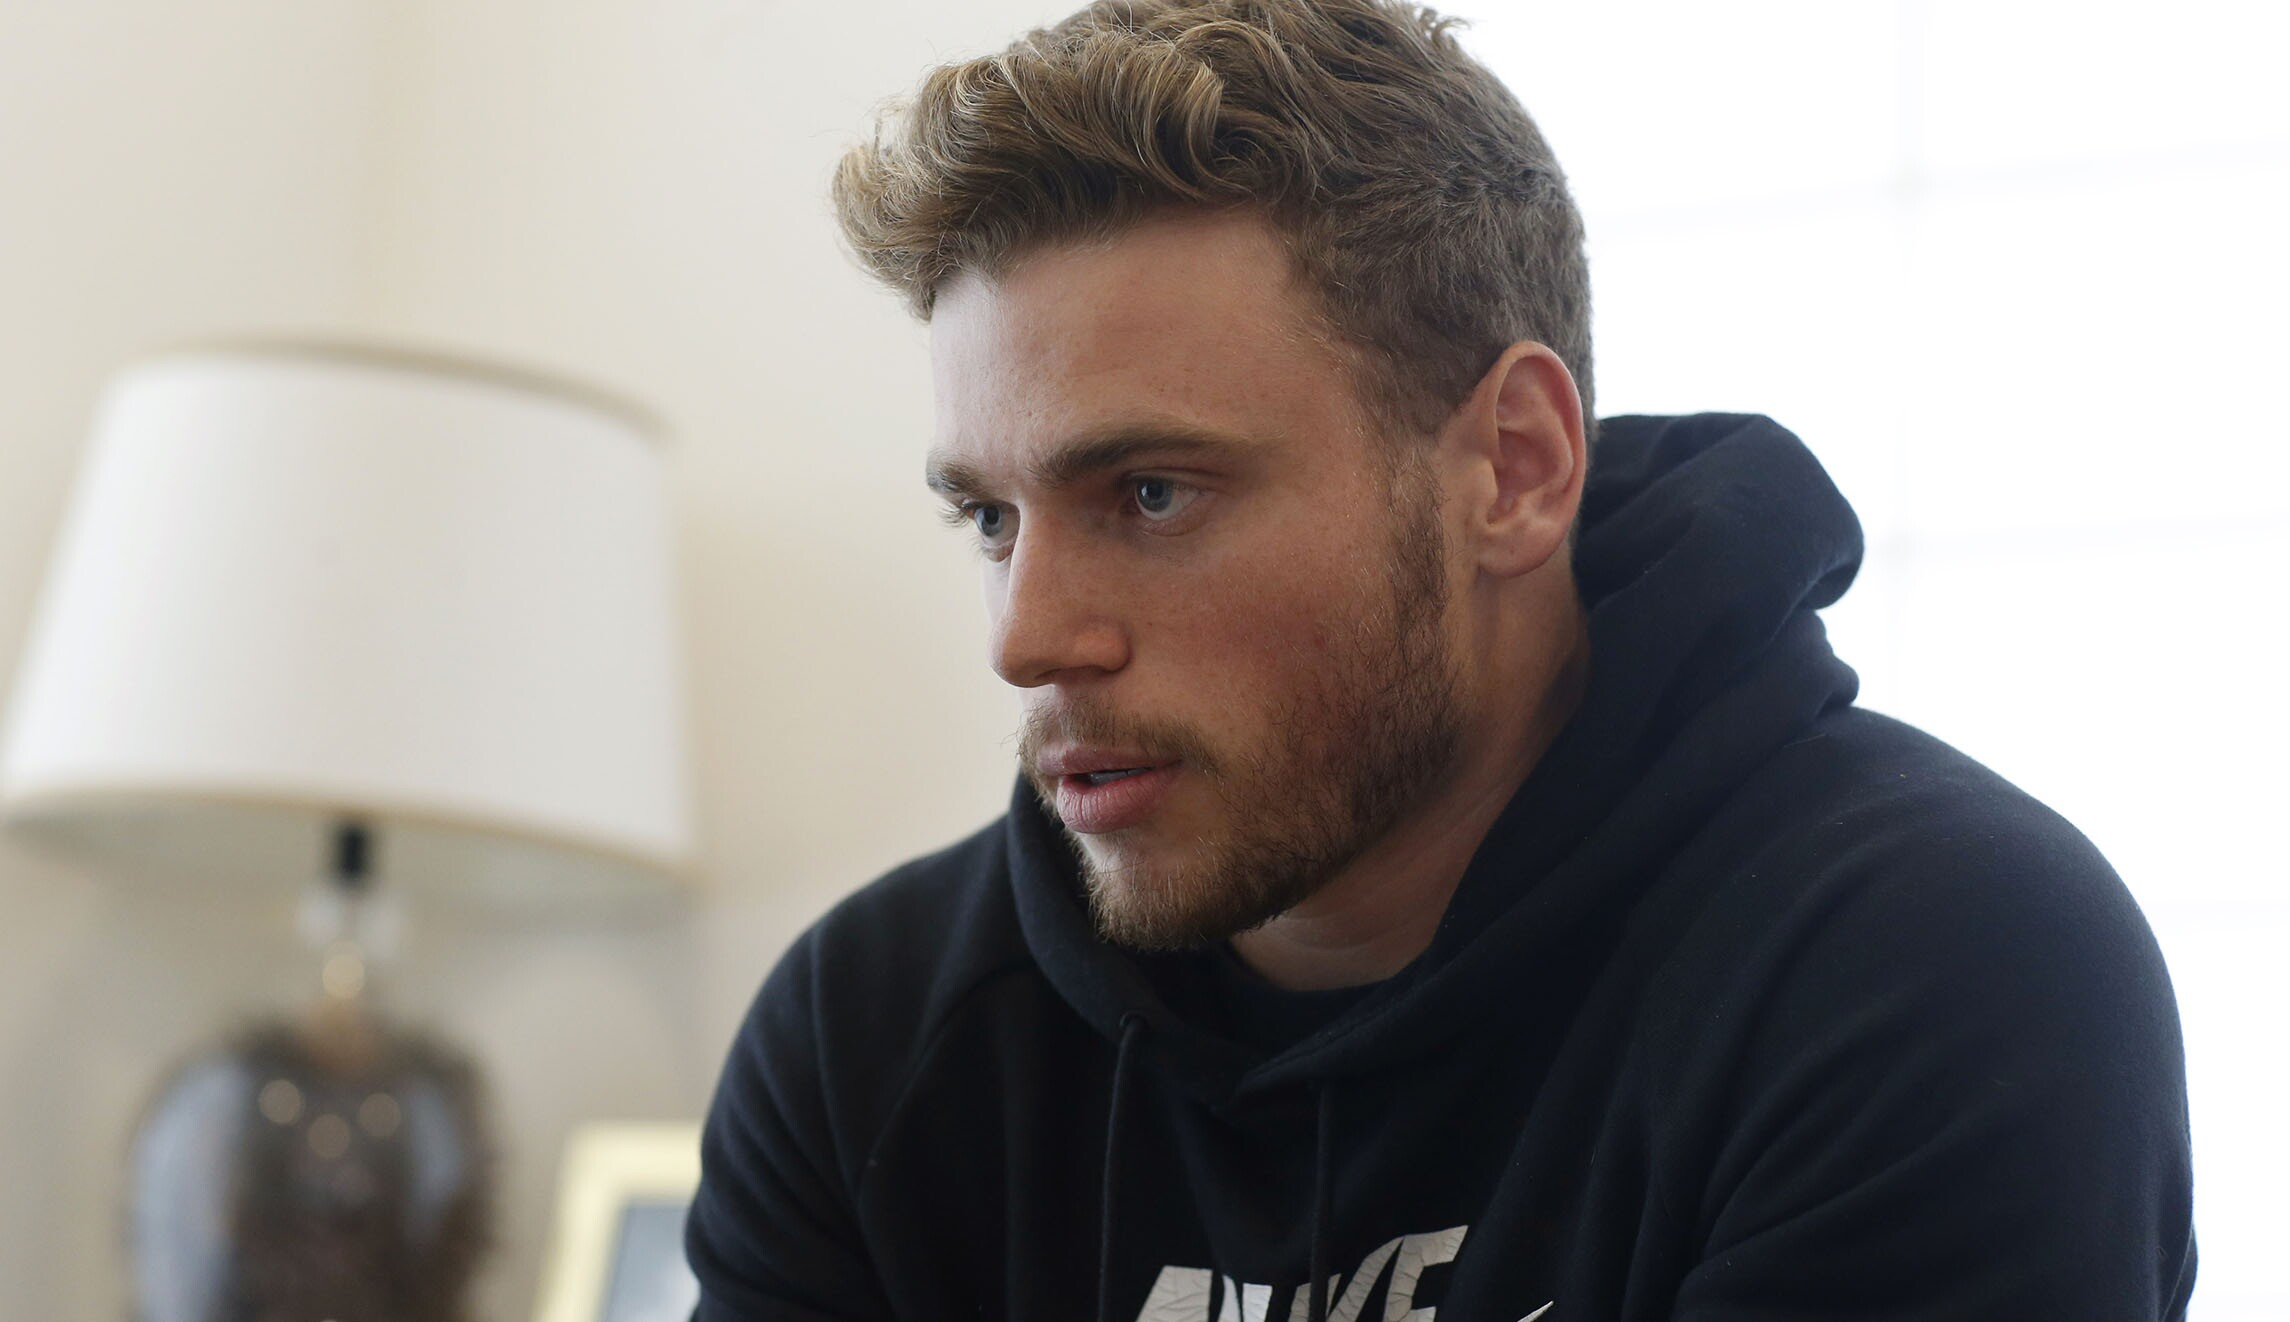 Gay US Olympic skier says silver lining of broken thumb is he can